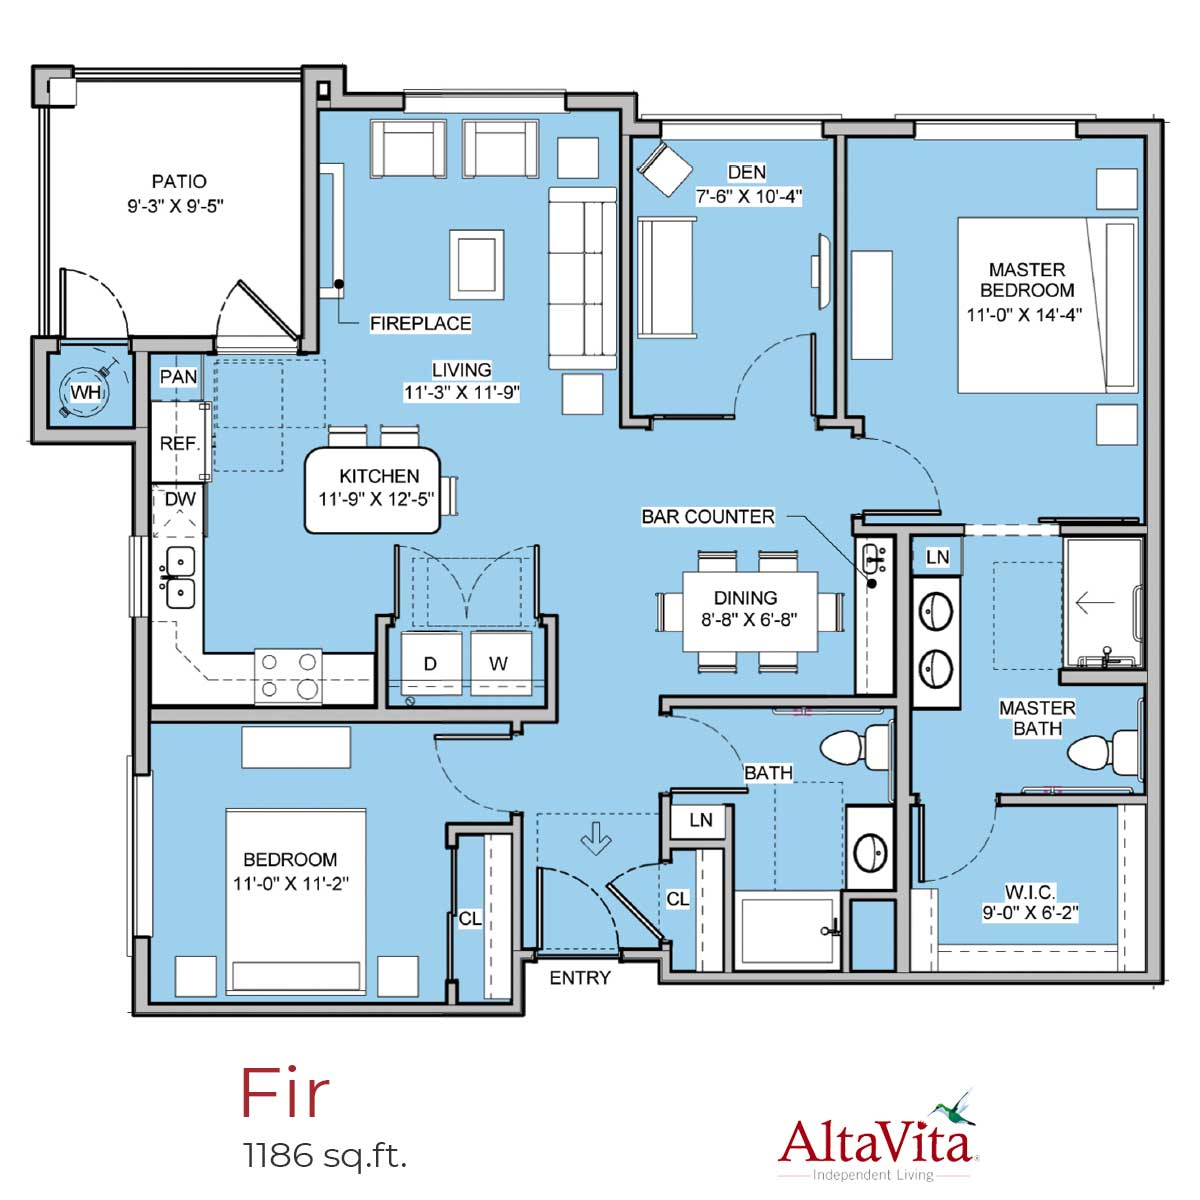 Fir - AltaVita Independent Living Floor Plans in Longmont, CO